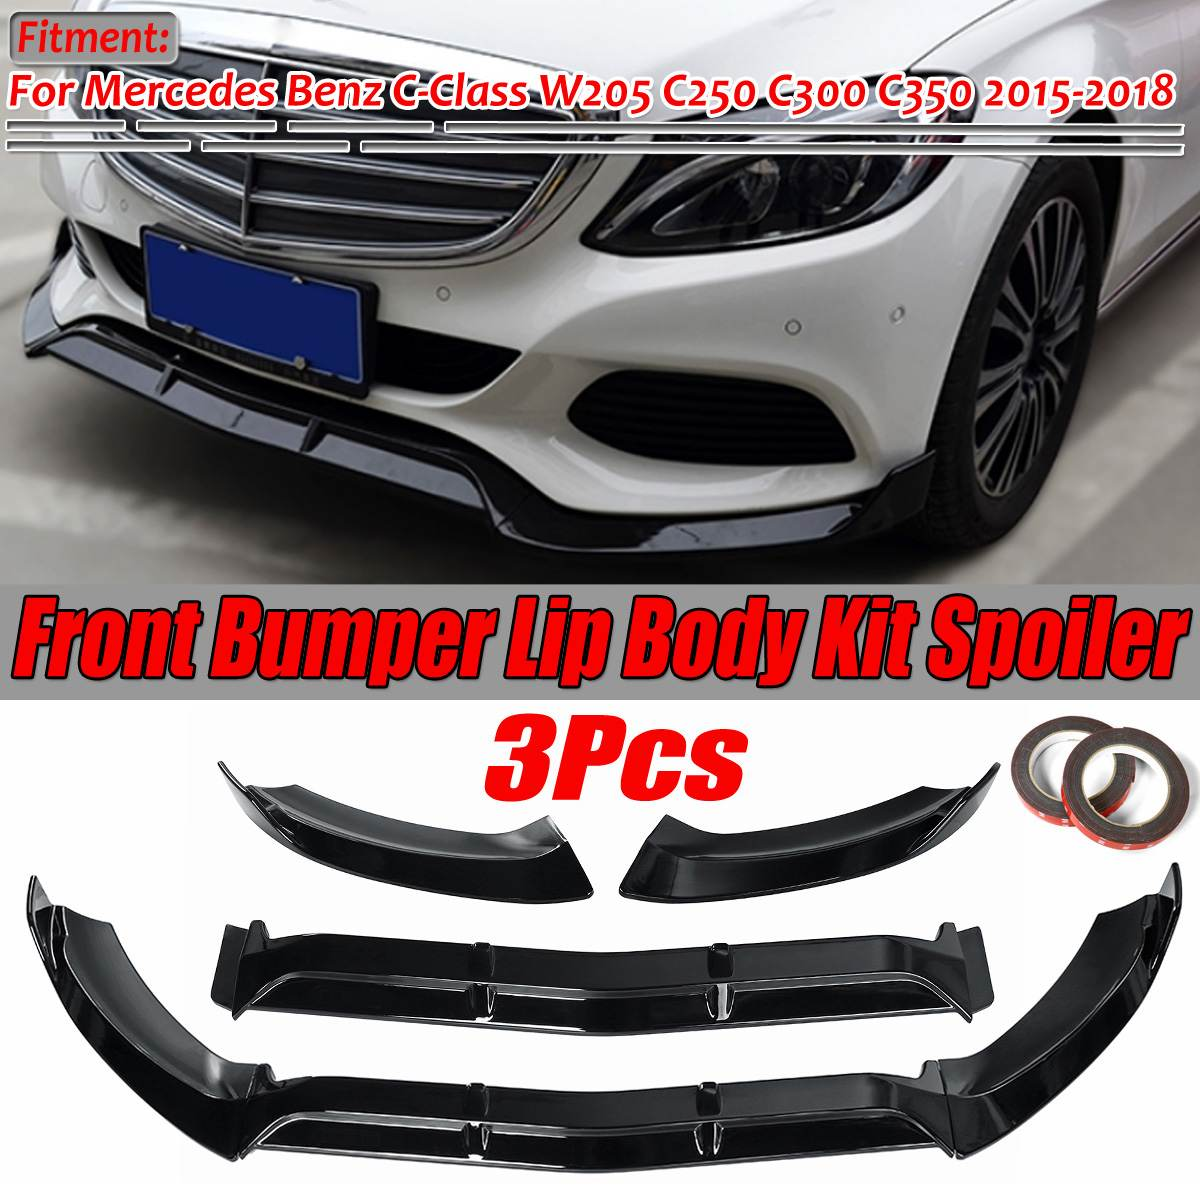 3Piece Car Front <font><b>Bumper</b></font> Splitter Lip Diffuser Guard Body Kit Spoiler For Mercedes For <font><b>Benz</b></font> C-Class <font><b>W205</b></font> C250 C300 C350 2015-2018 image